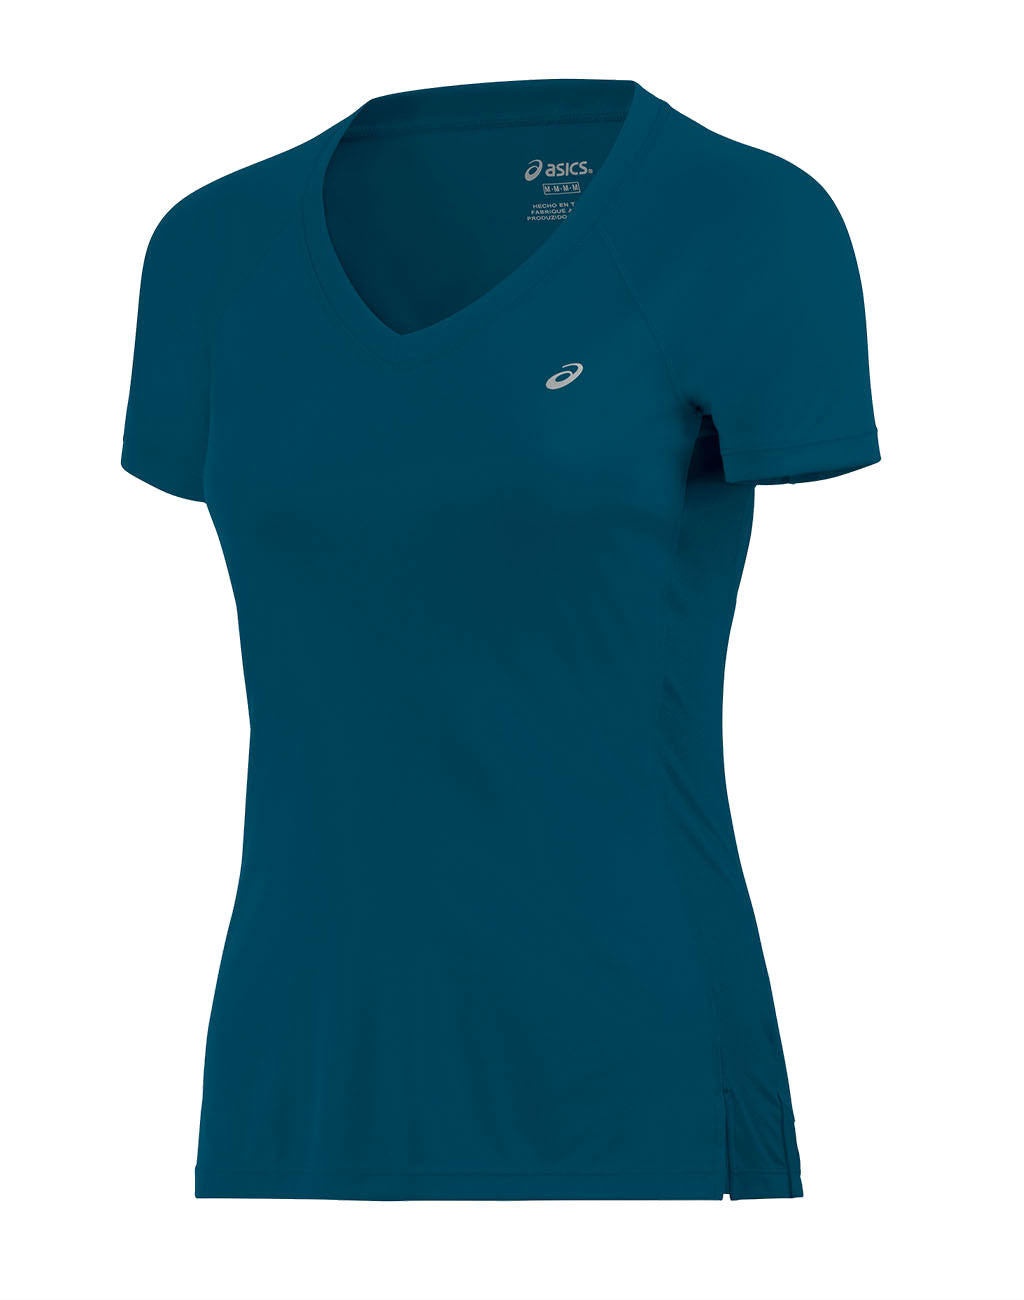 ASICS ASX Dry Short Sleeve Top (Women's)Teal_master_image